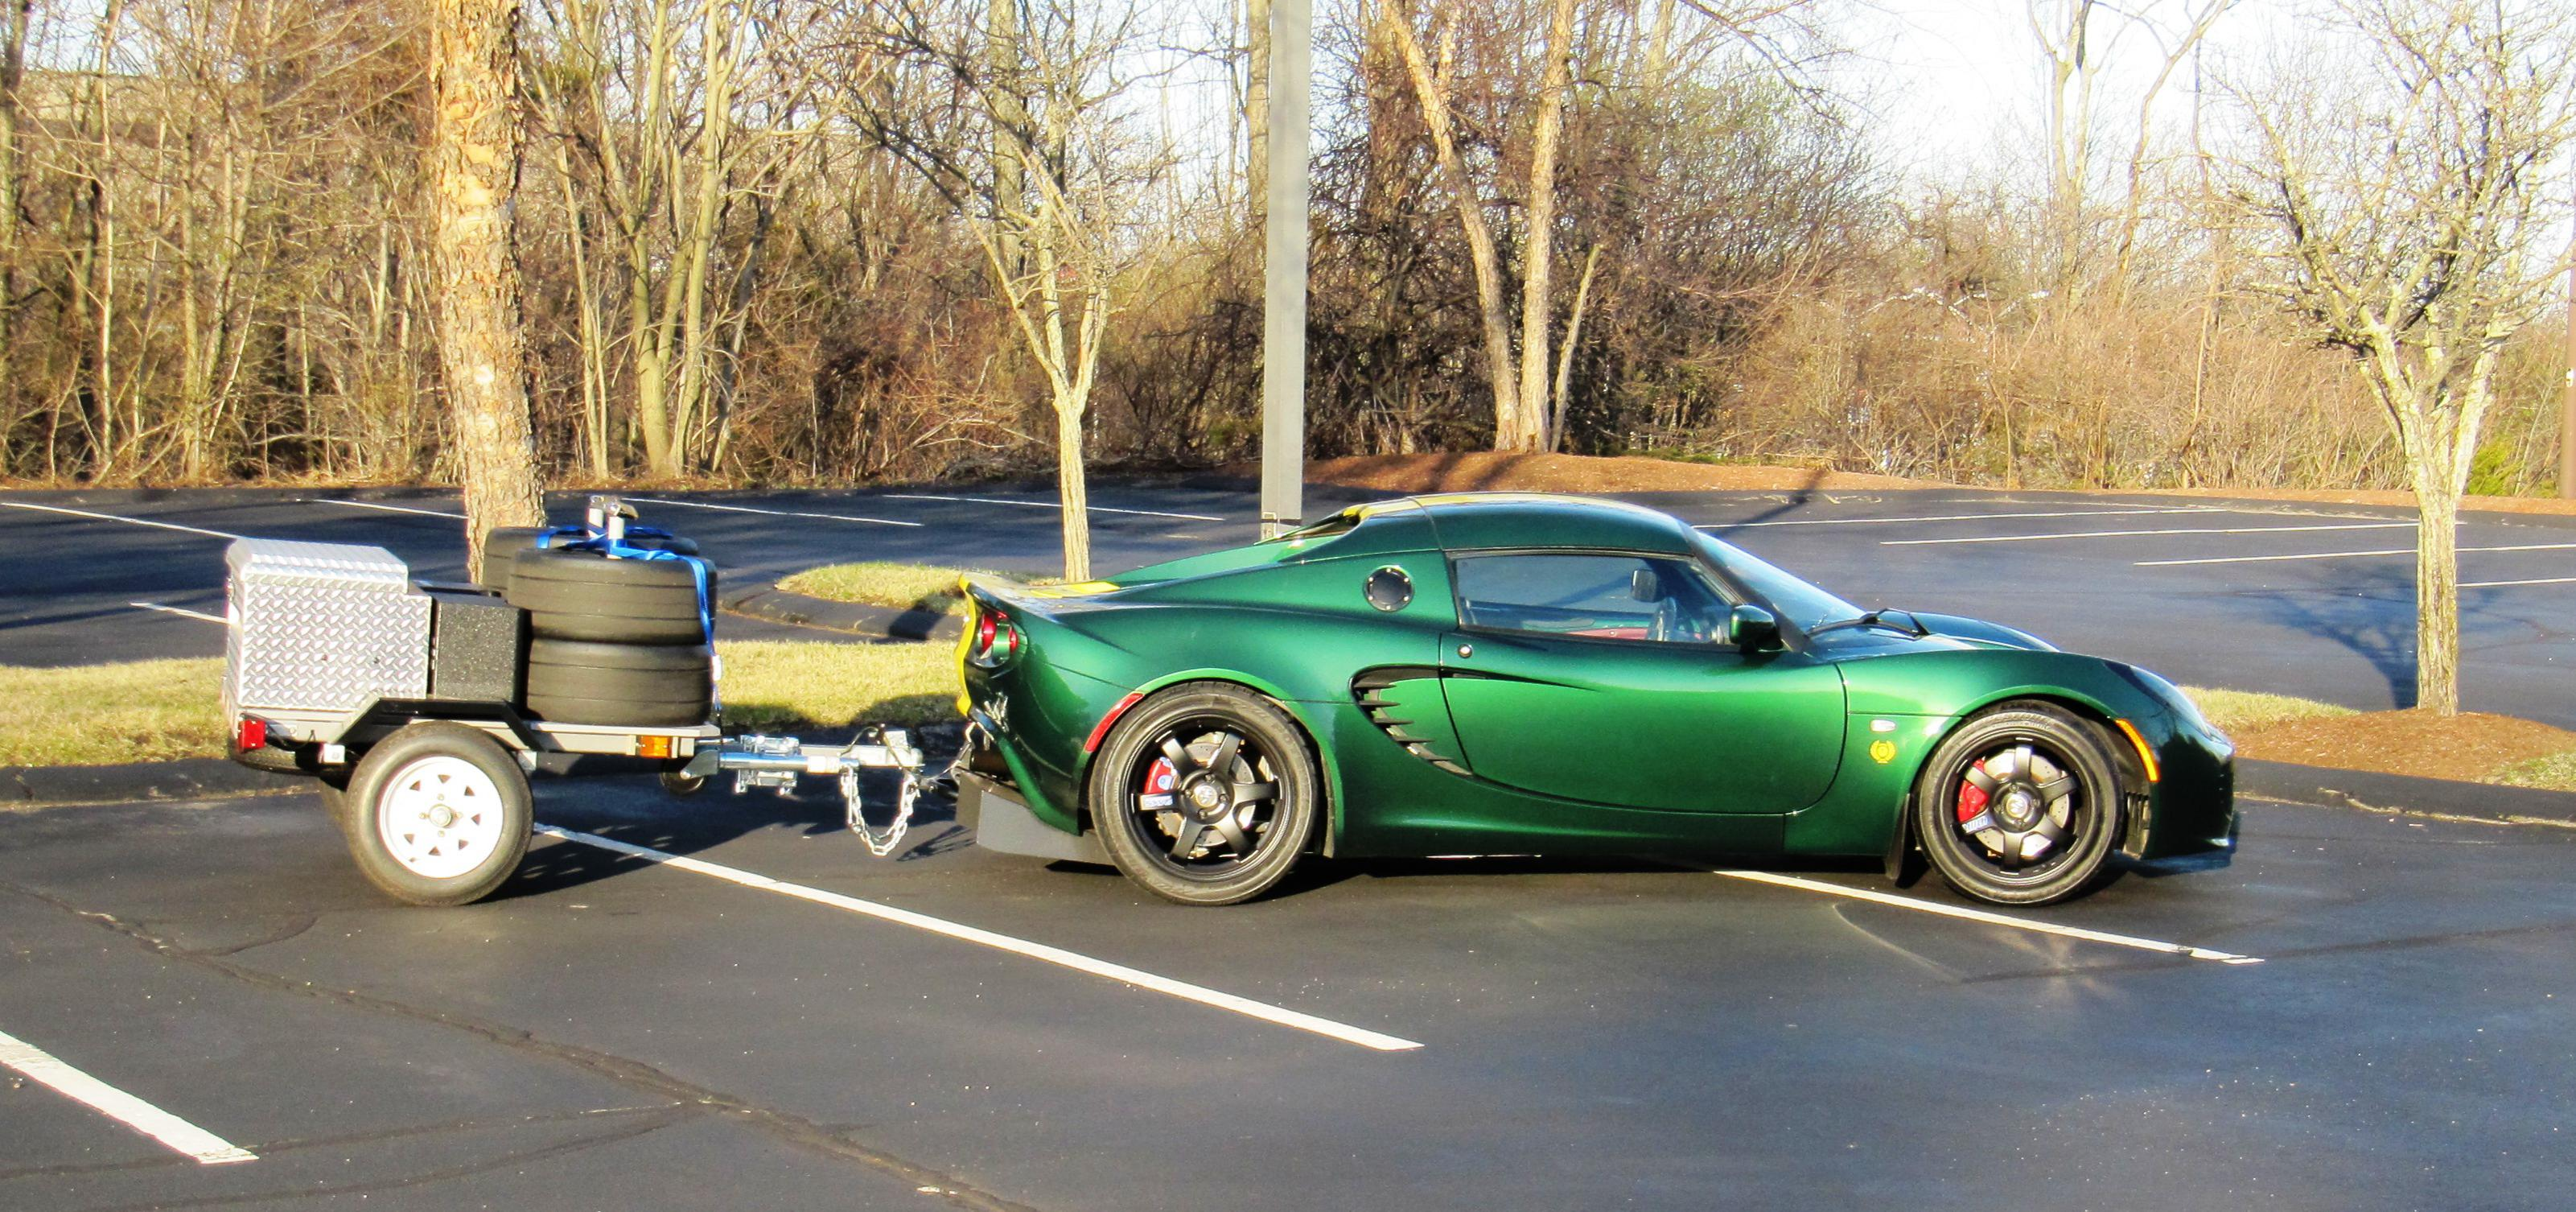 Lotus exige for track day lotustalk the lotus cars community